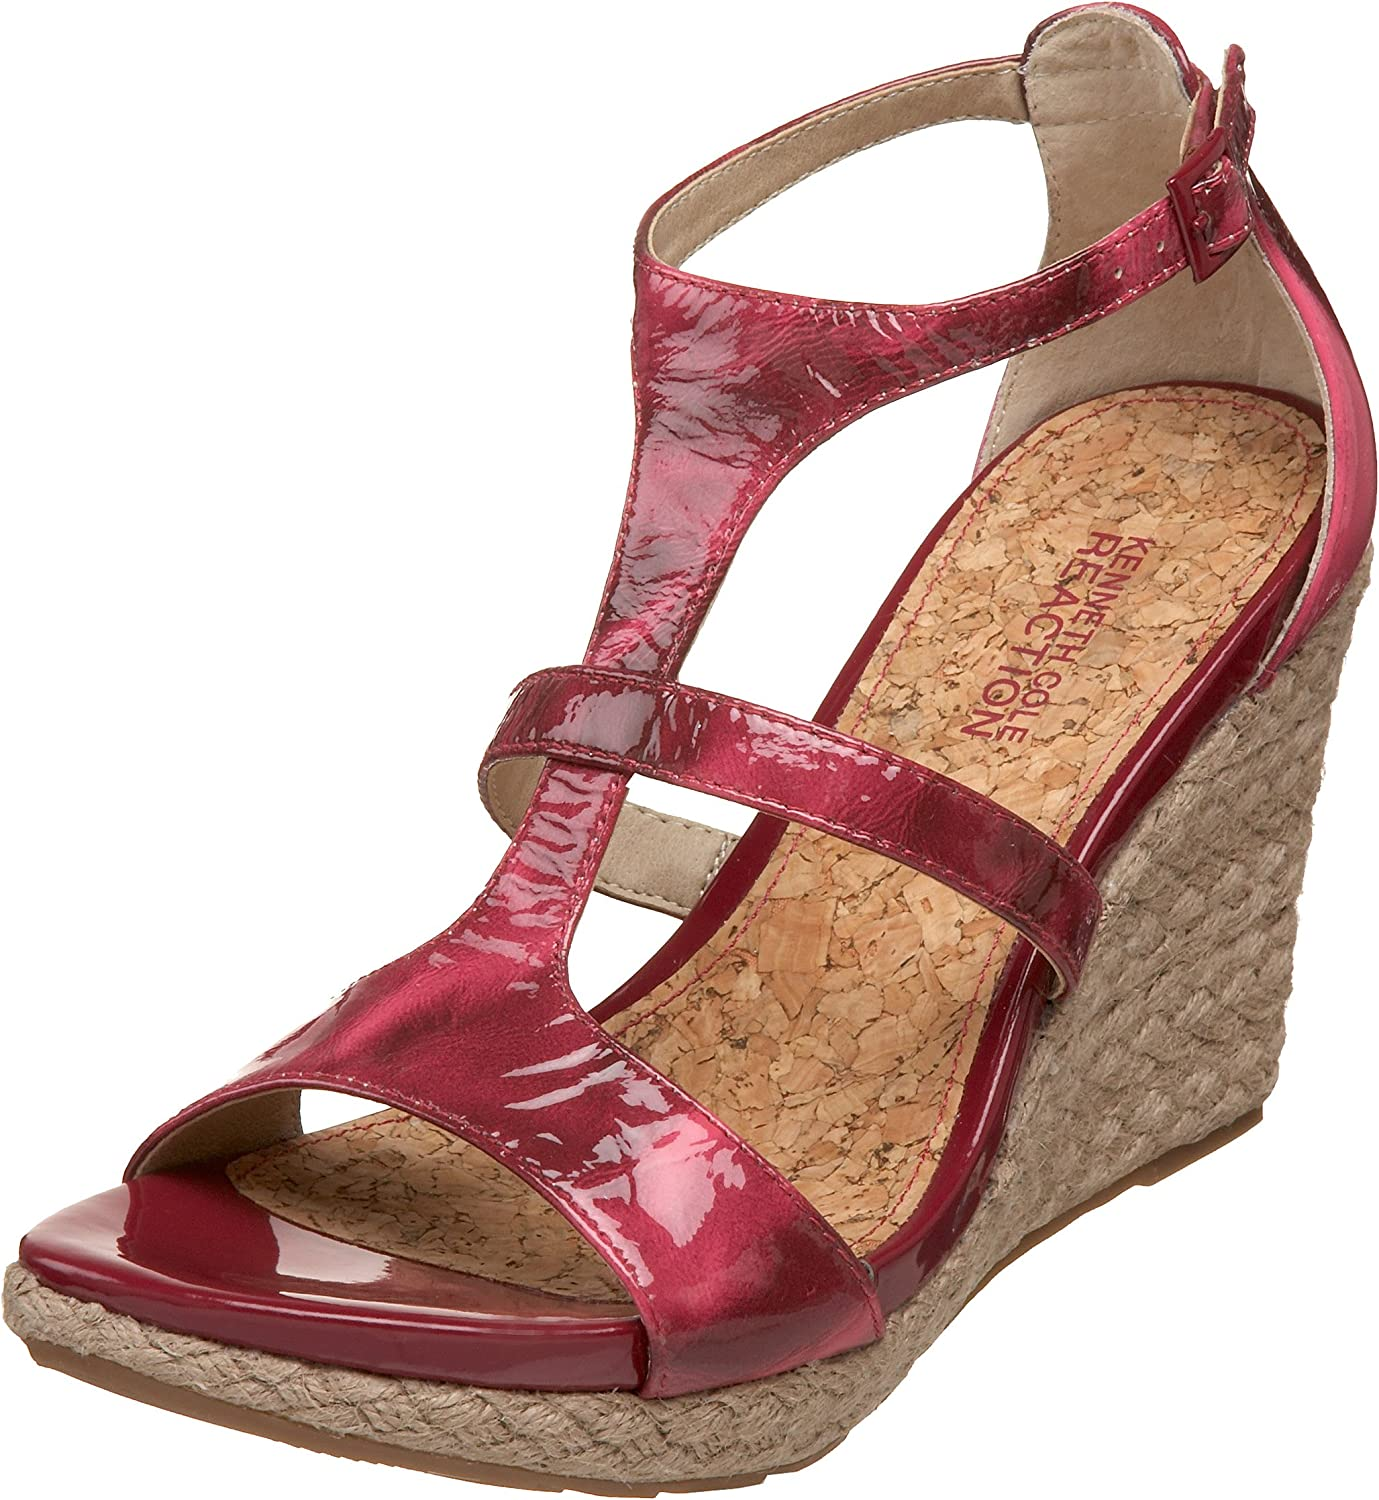 Kenneth Cole REACTION Women's Kiss Max 67% OFF Dare Sandal Or Max 68% OFF Wedge